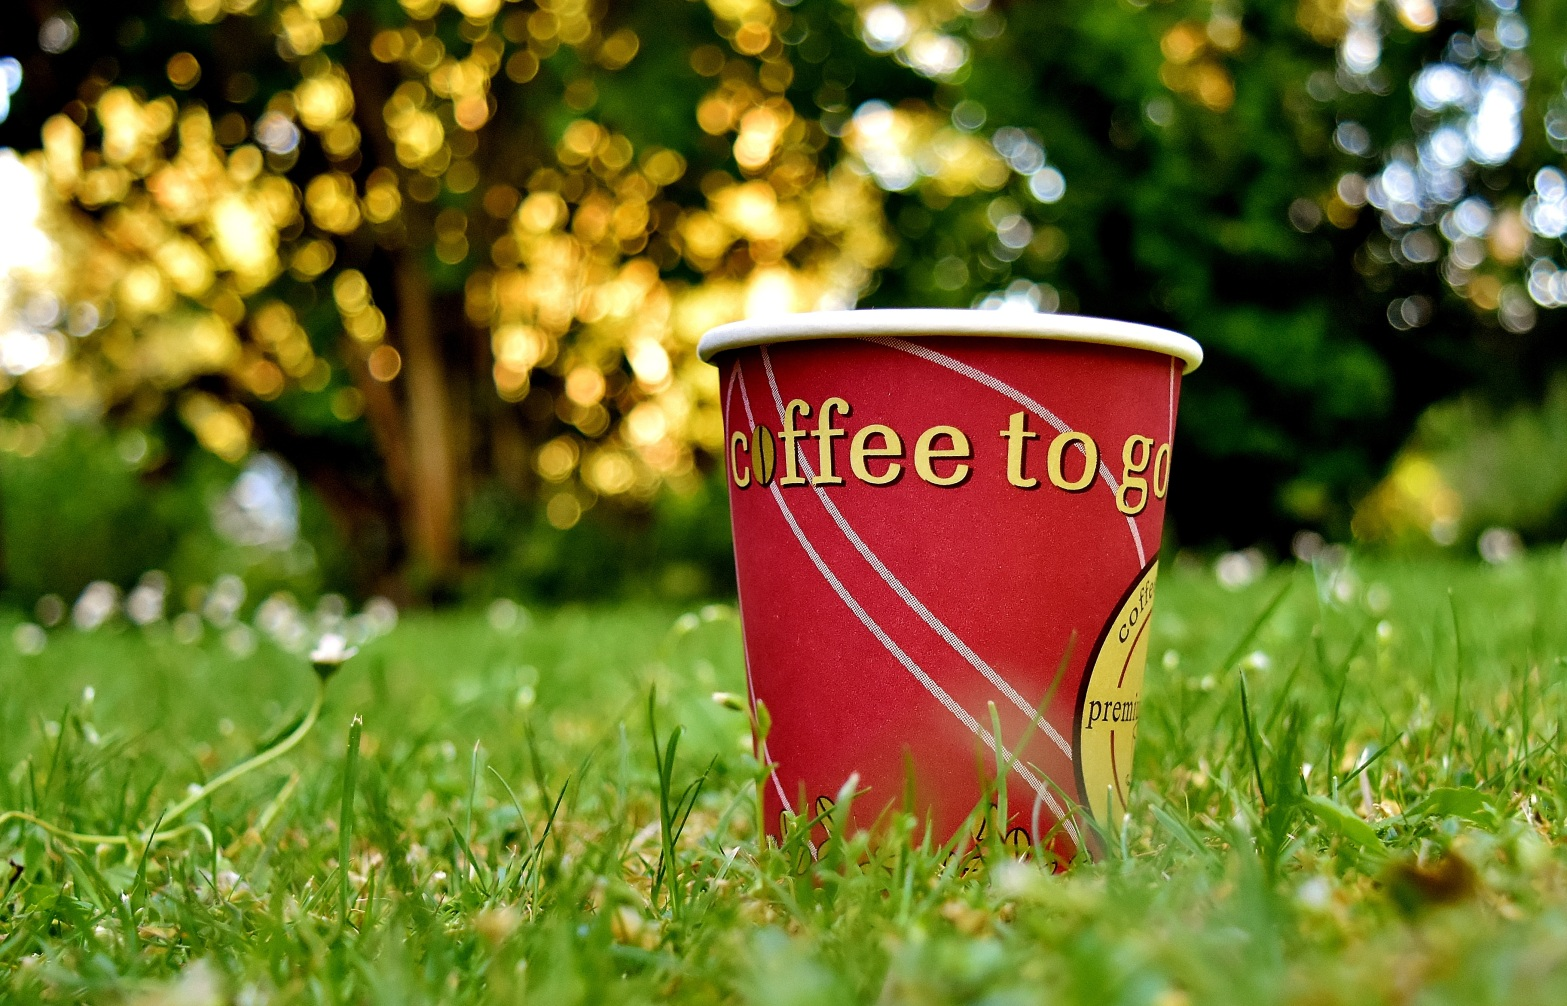 Non-recyclable takeaway coffee cup